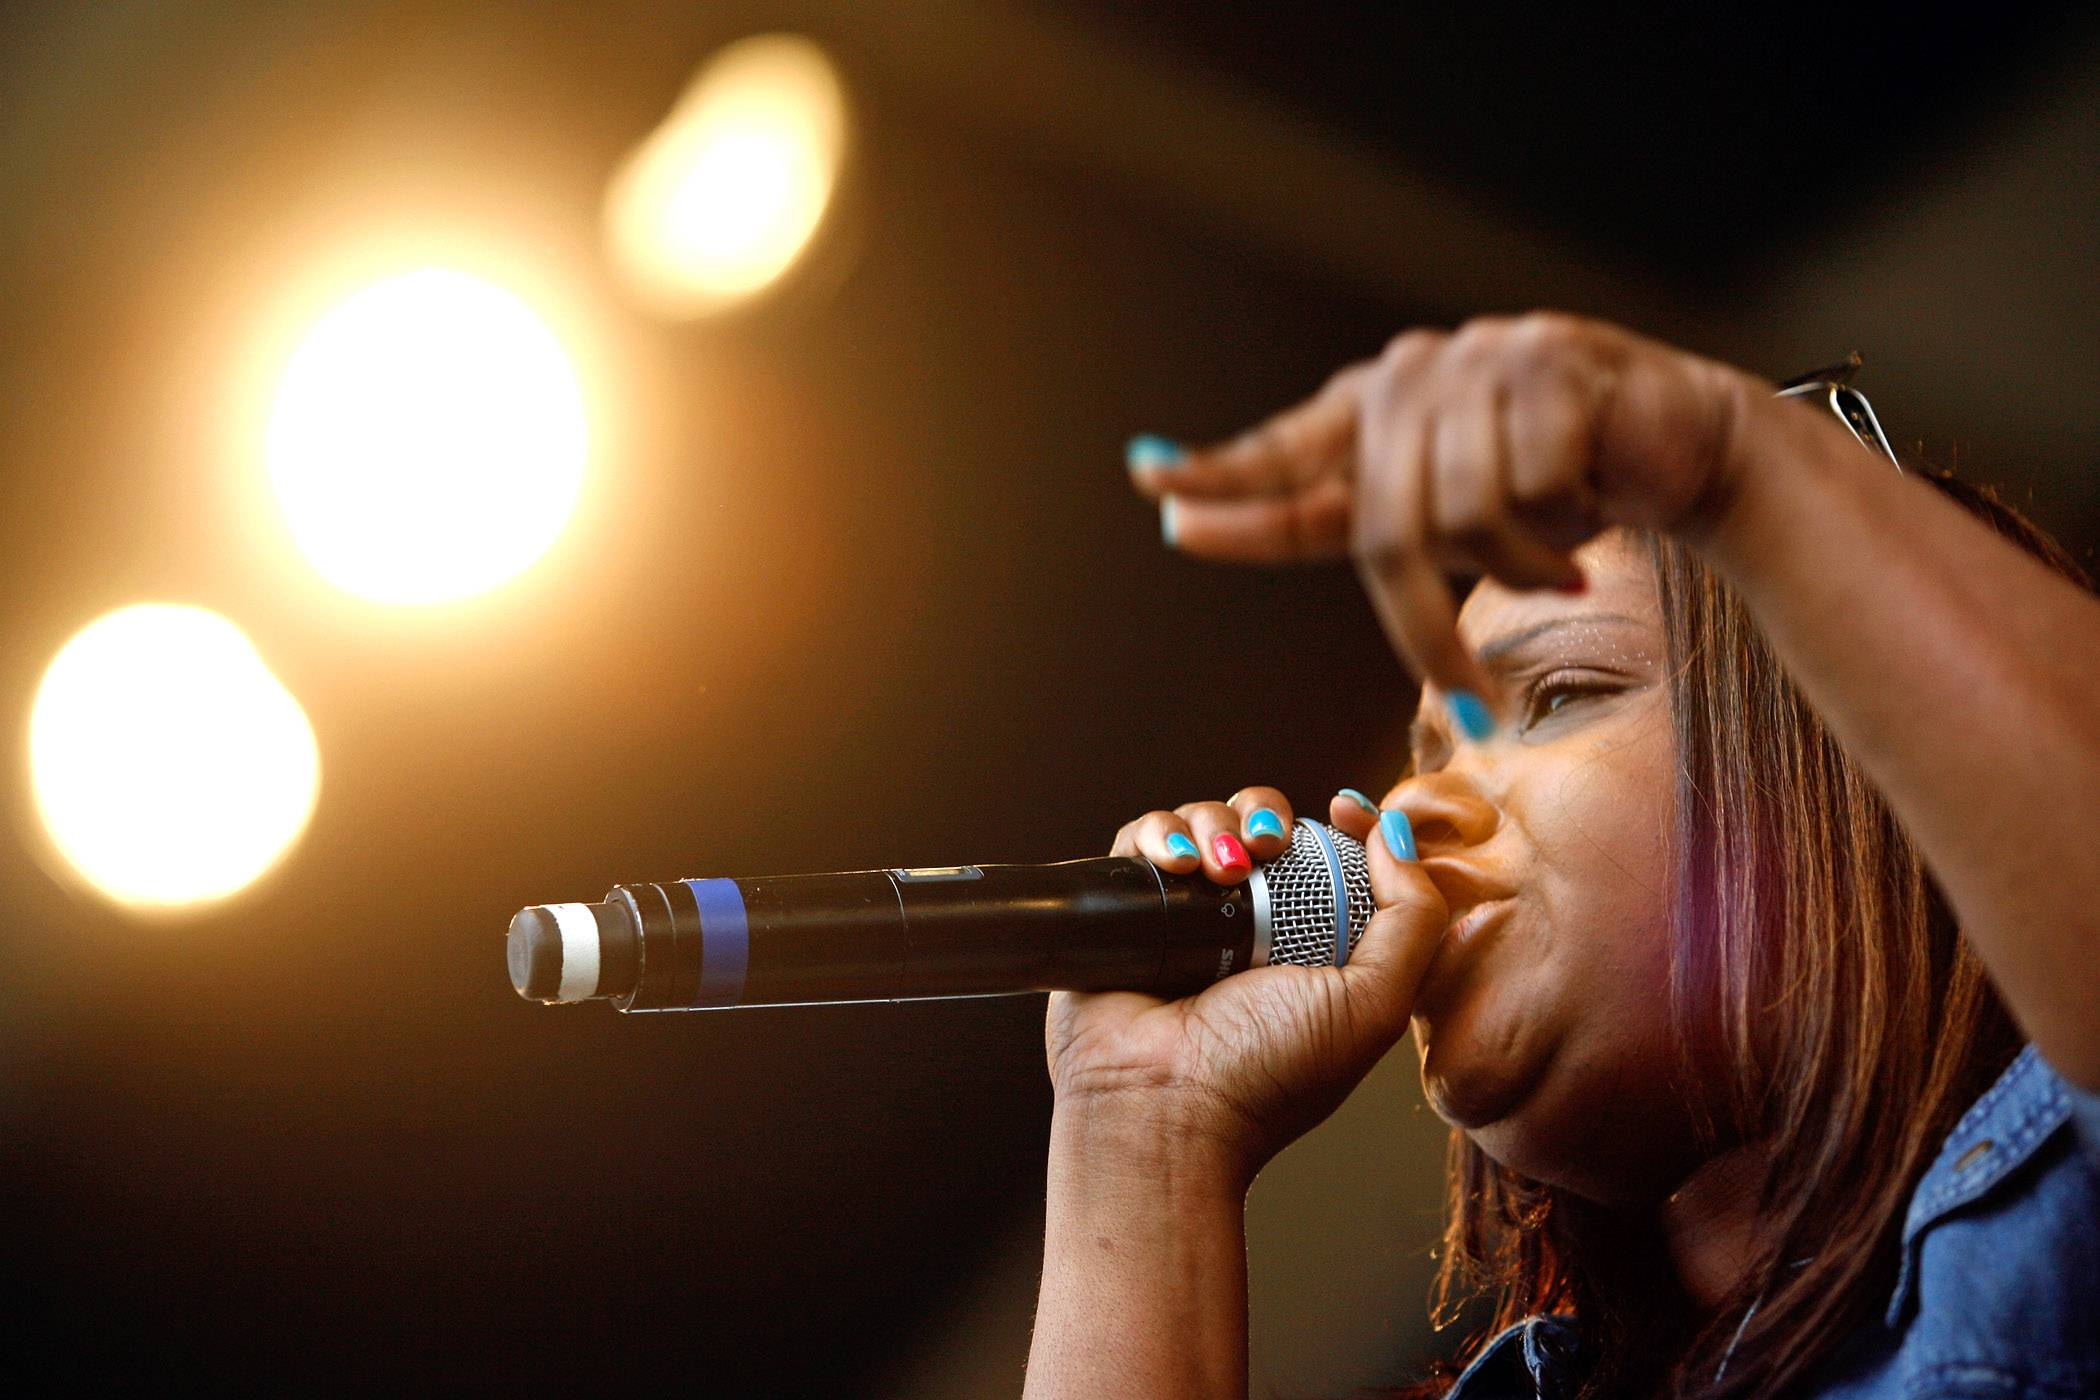 Mia X ? No Limit - As the first female signee to No Limit Records, Mia X released three albums between 1995 and 1998. In 1997 Unlady Like, her second album on the Master P-owned label, was certified gold.(Photo: Times-Picayune /Landov)